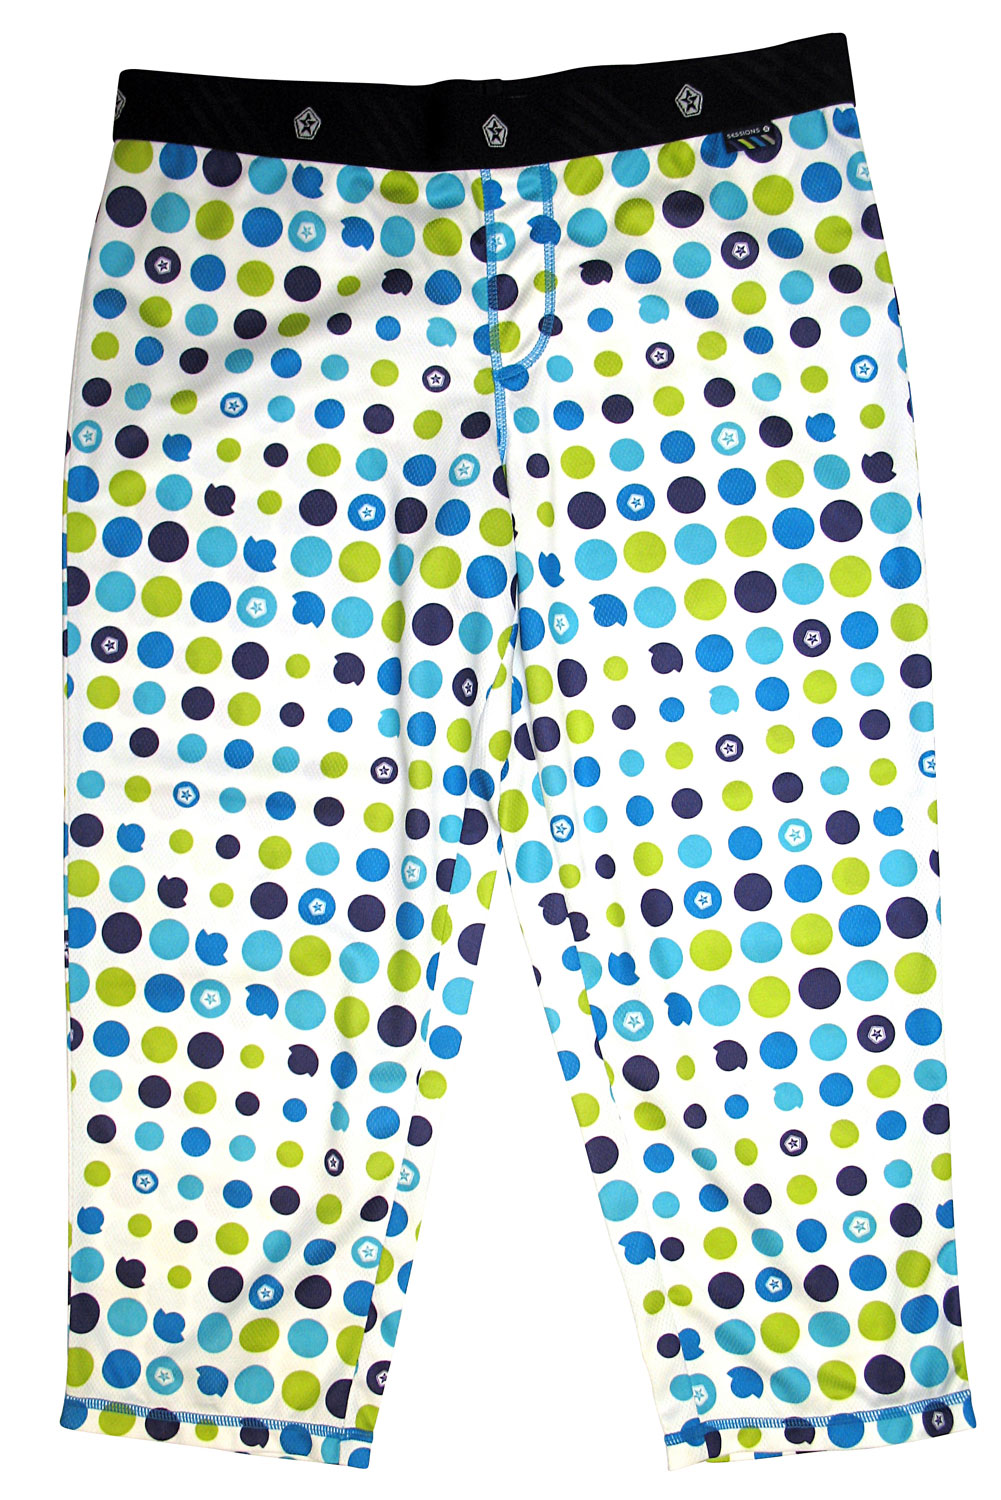 Rock these fabulous capri pants all summer long. The Sessions Edge Capri features a colorful polka dot design throughout. This stretch fabric is ultra comfortable and cool. Falling below the knees, this is a great look for summer providing great breathability and fit. Add this Sessions Edge Capri to your wardrobe and rock it all summer long.Key Features of The Sessions Edge Capris Women's 1st Layer Pants: Stretch Flat Lock Seams Articulated Body - $24.95